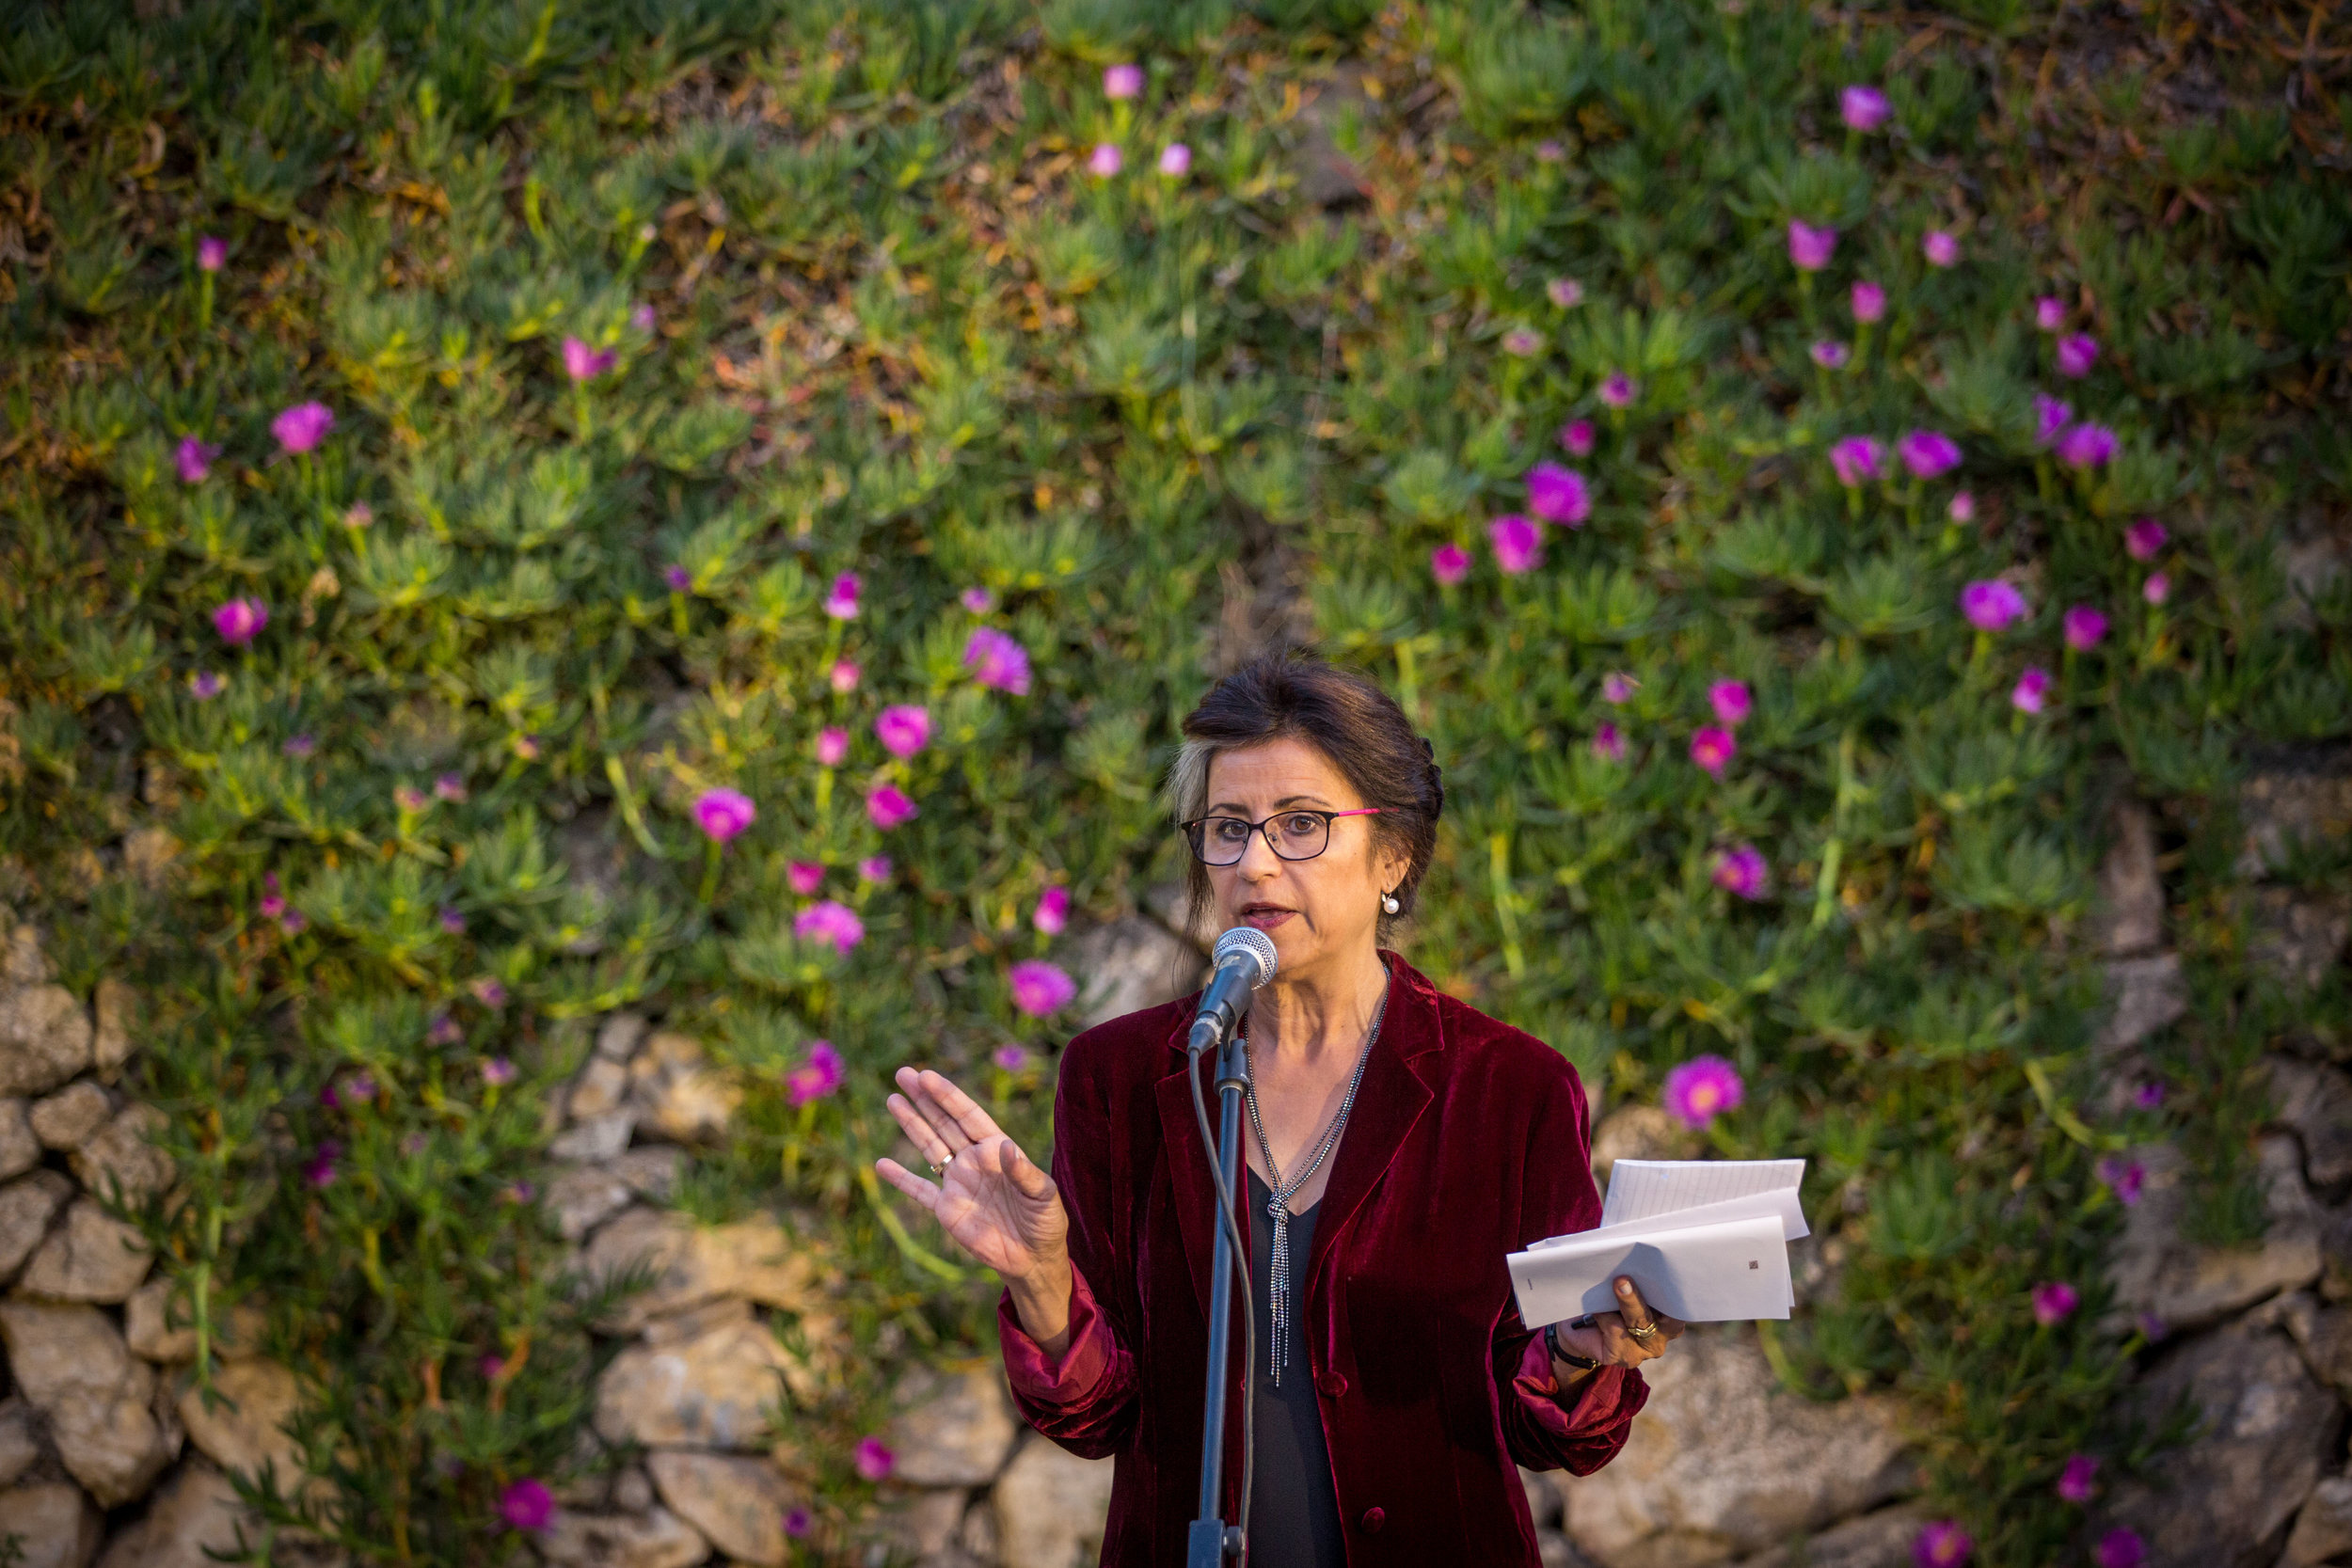 Ahdaf Soueif at PalFest in 2017 in Nablus, Palestine. Photo: Rob Stothard for Palfest.